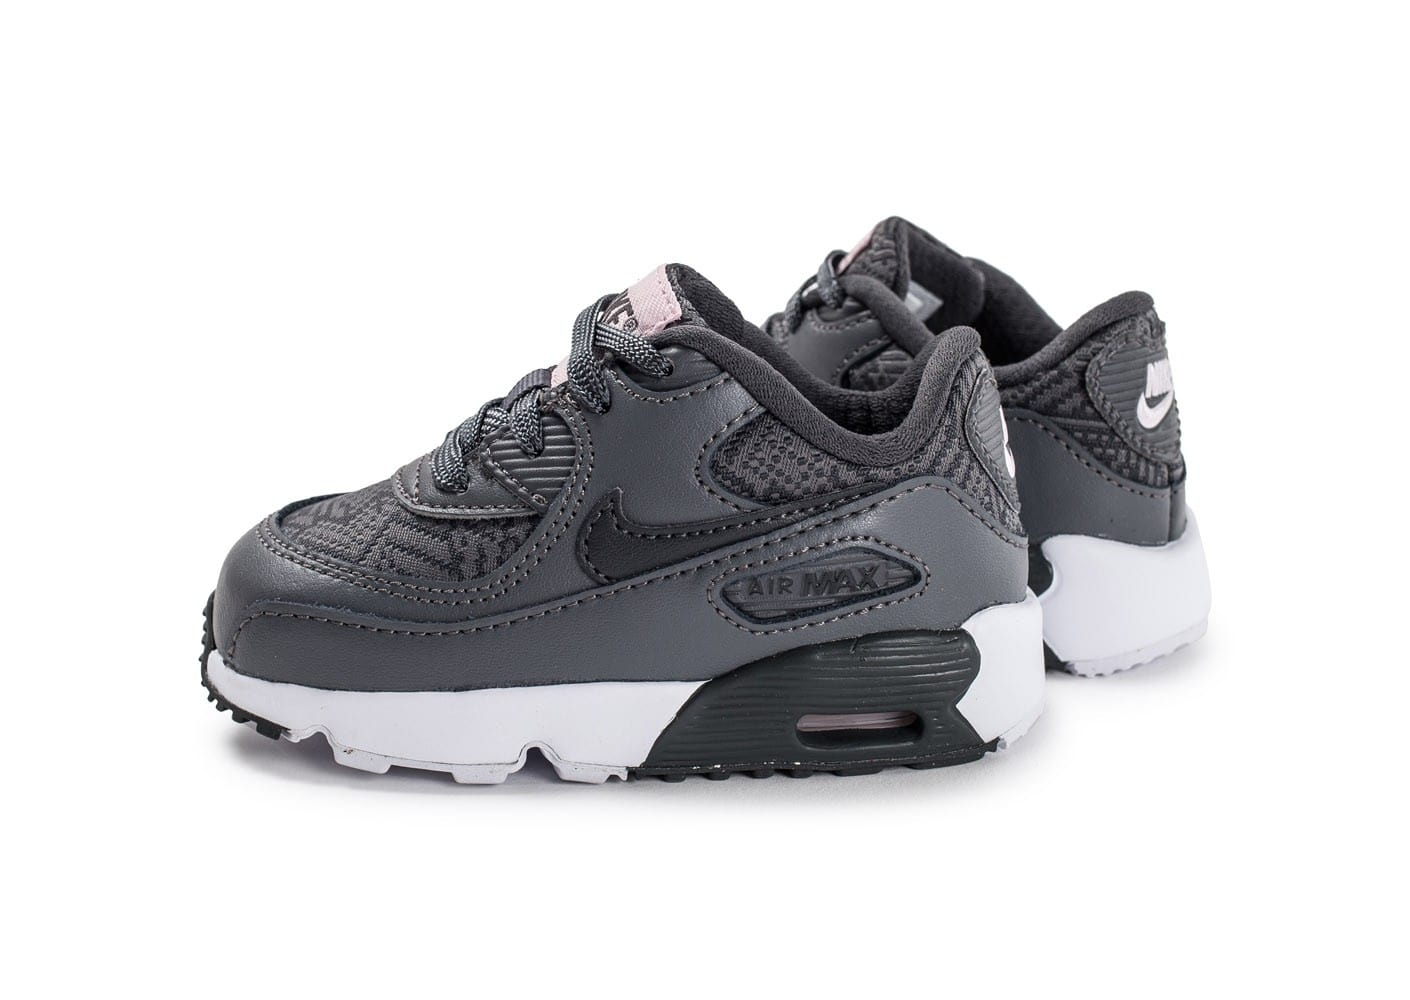 Chaussures Nike Air Max blanches pour bébé v7GSnk - pleasantly.achat ... 7ed5ff5ff403